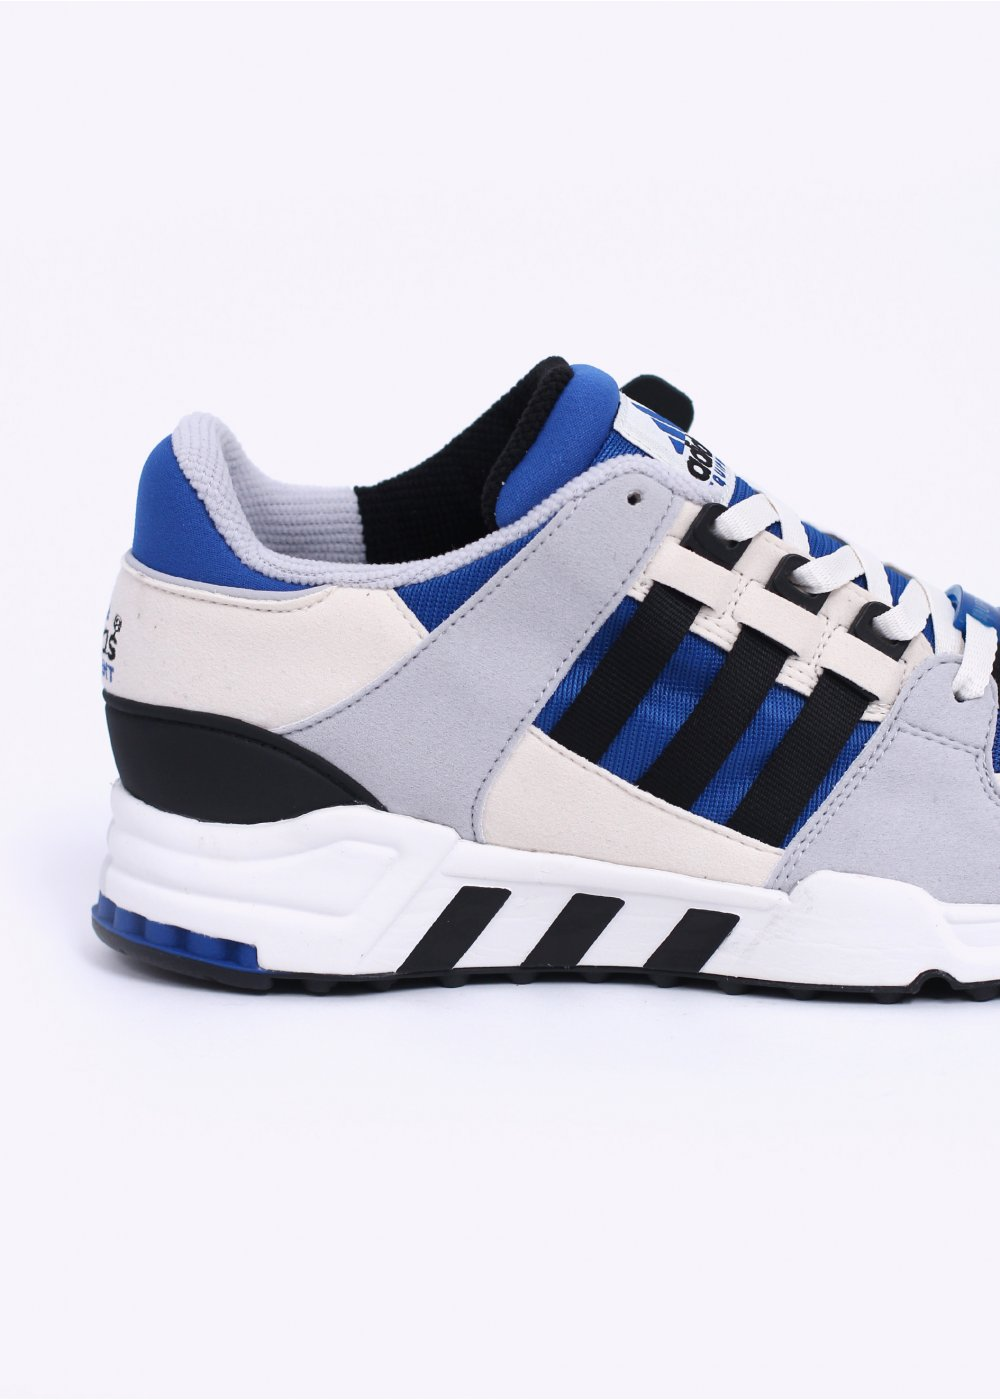 adidas originals eqt equipment running support 93 trainers. Black Bedroom Furniture Sets. Home Design Ideas